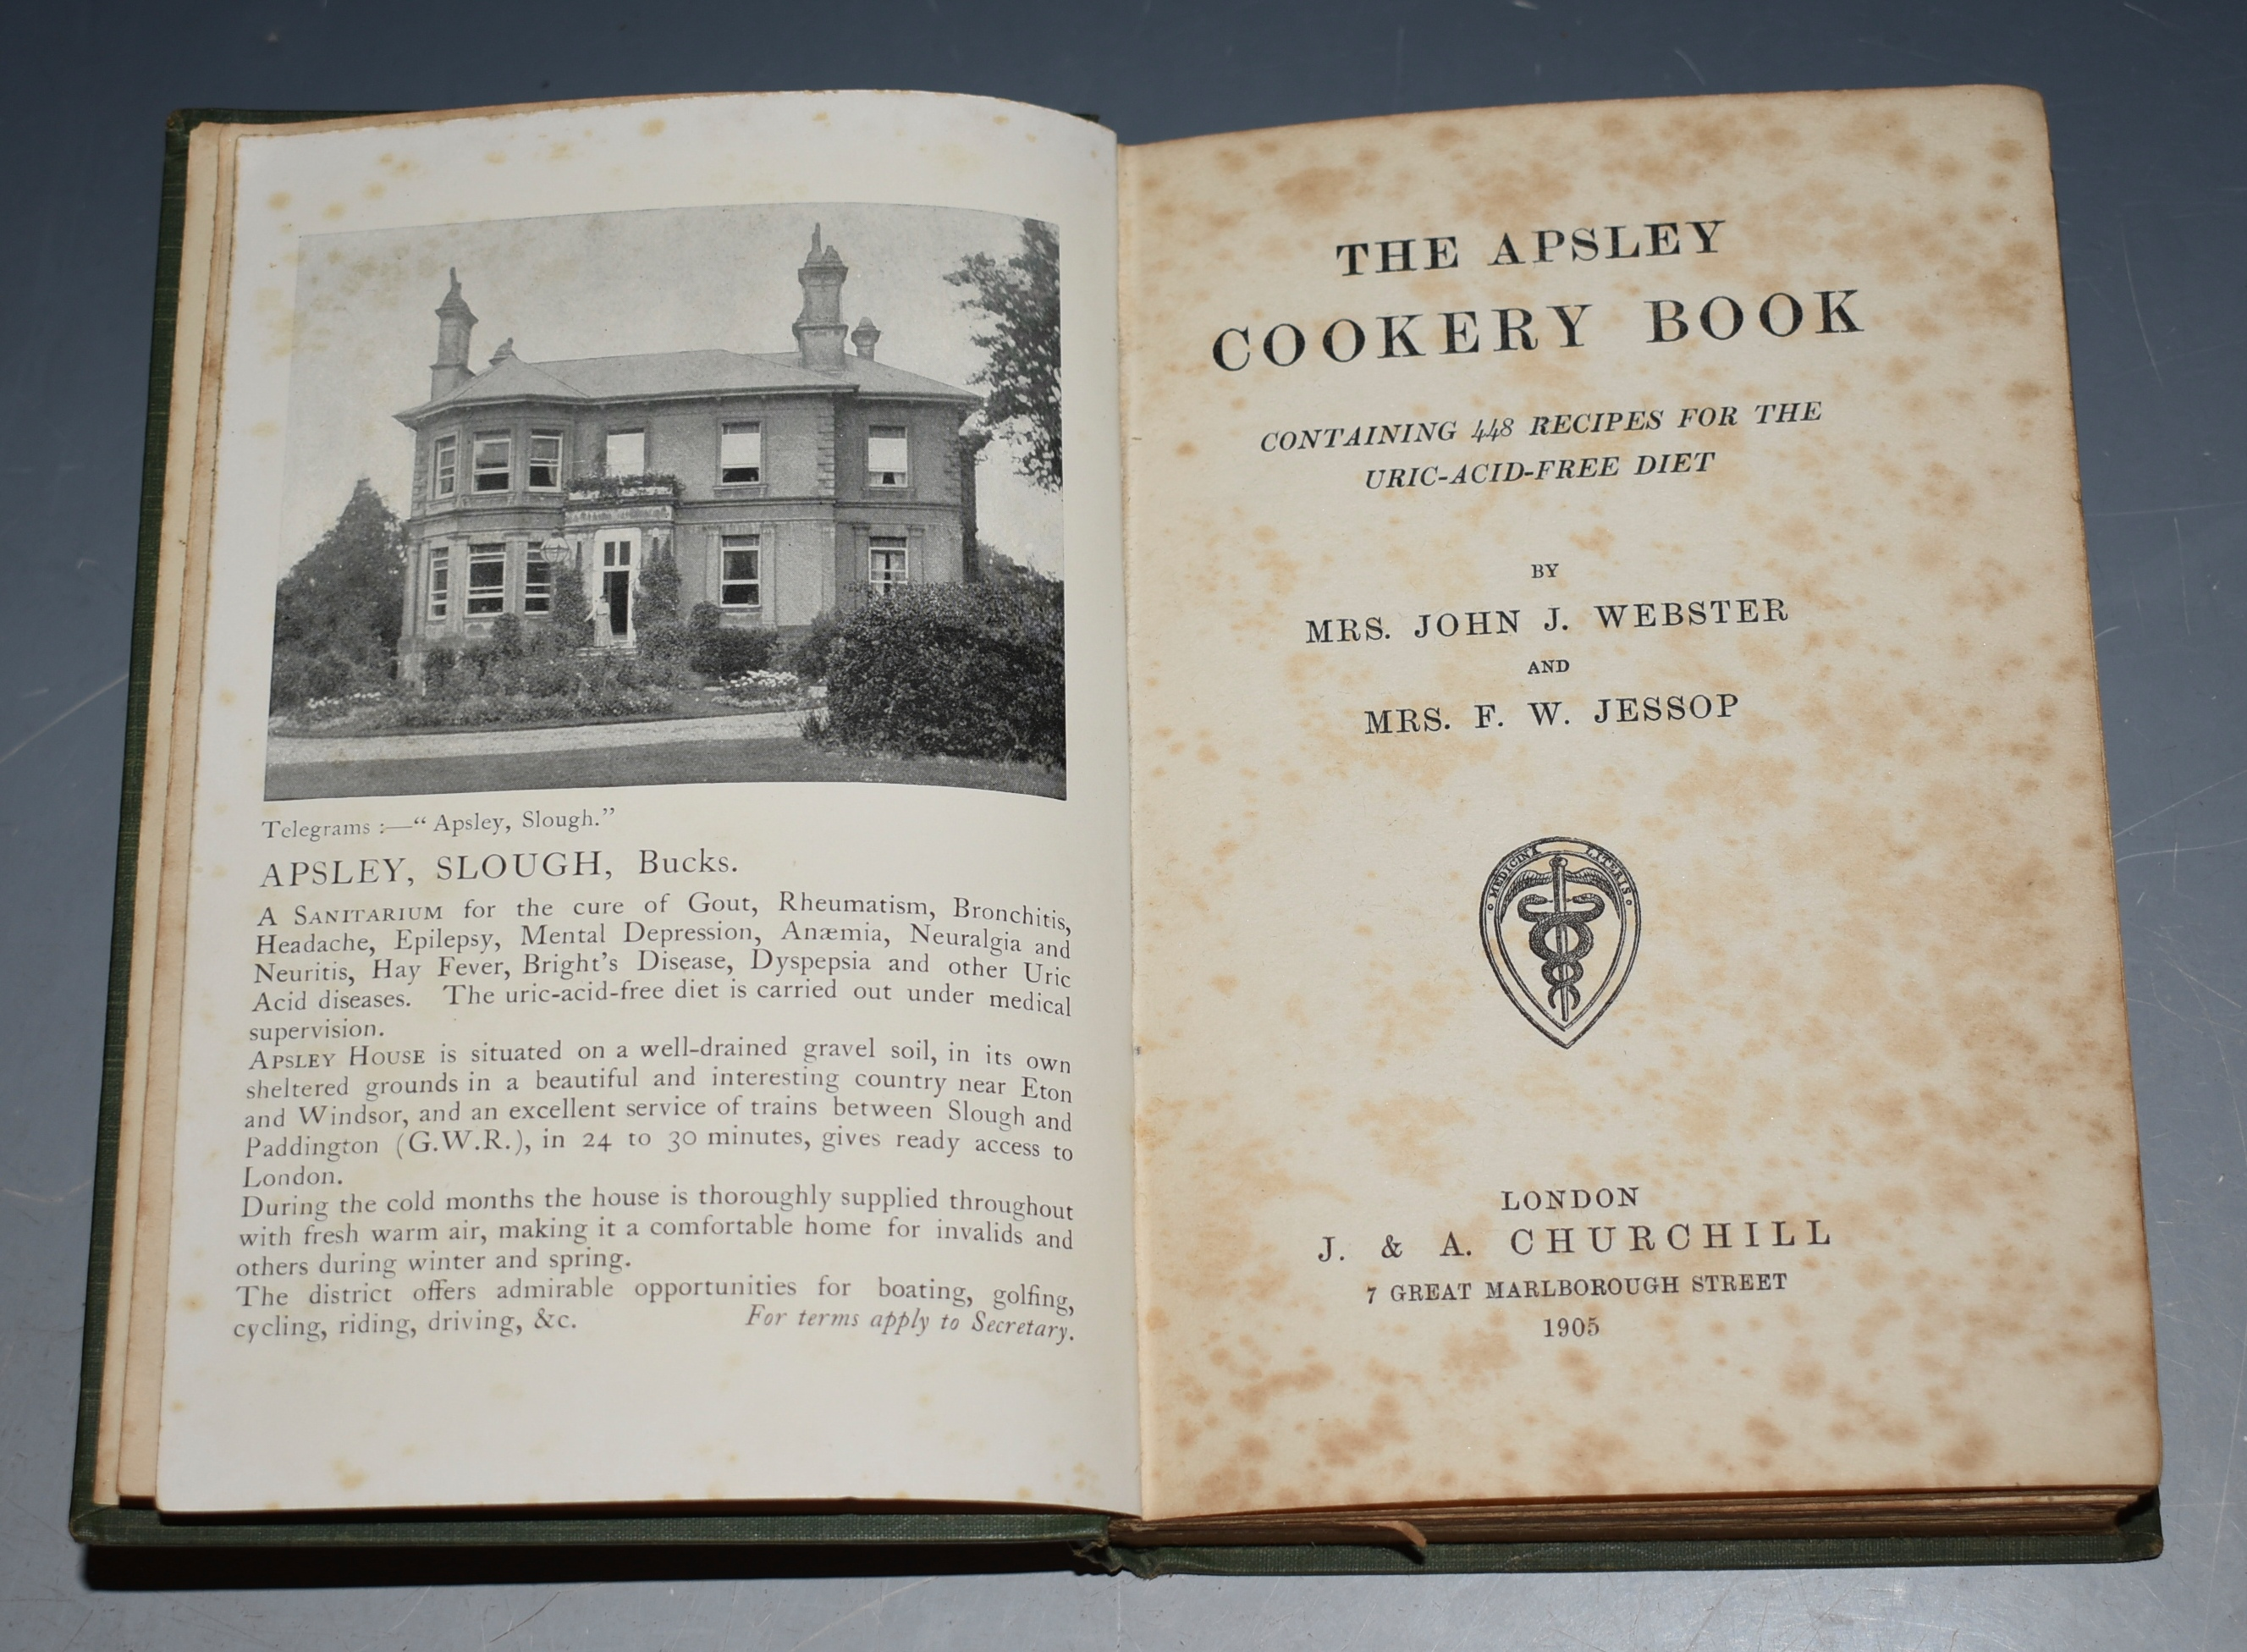 Image for The Apsley Cookery Book. Containing 448 Recipes for the Uric-Acid-Free Diet.